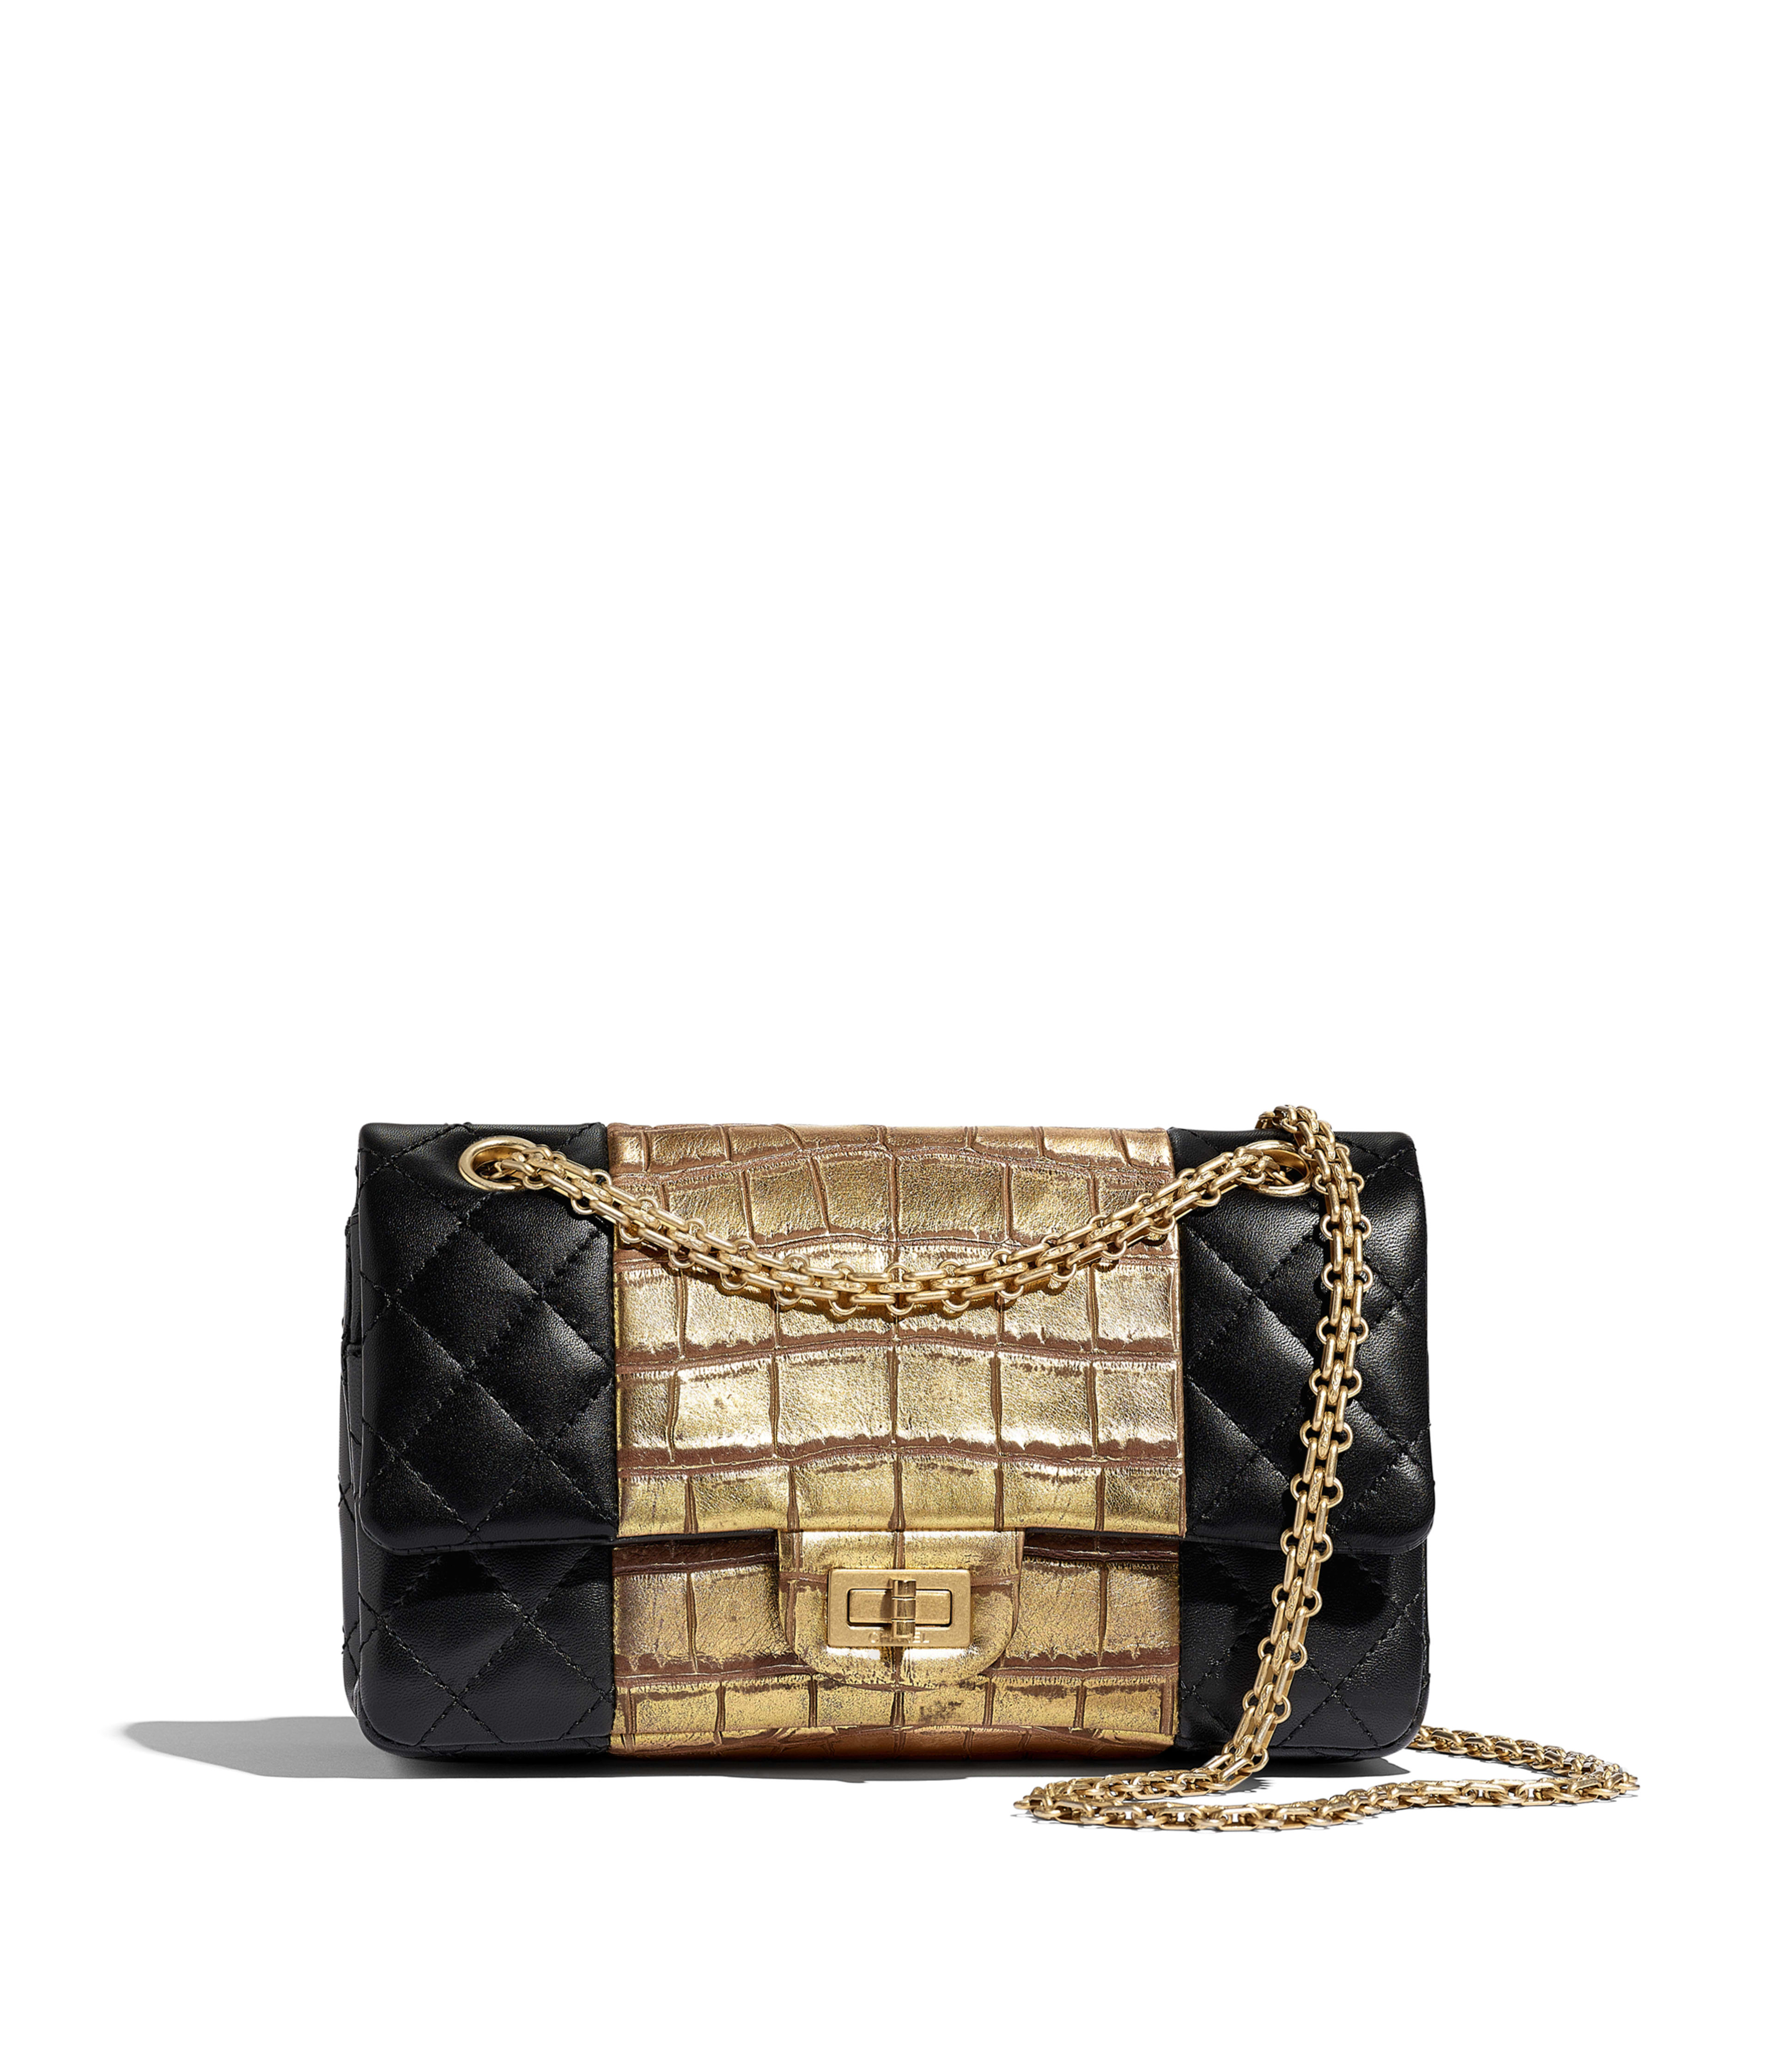 c8666948402434 2.55 Handbag Lambskin, Crocodile Embossed Calfskin & Gold-Tone Metal, Black  & Gold Ref. A37586B00922N0784